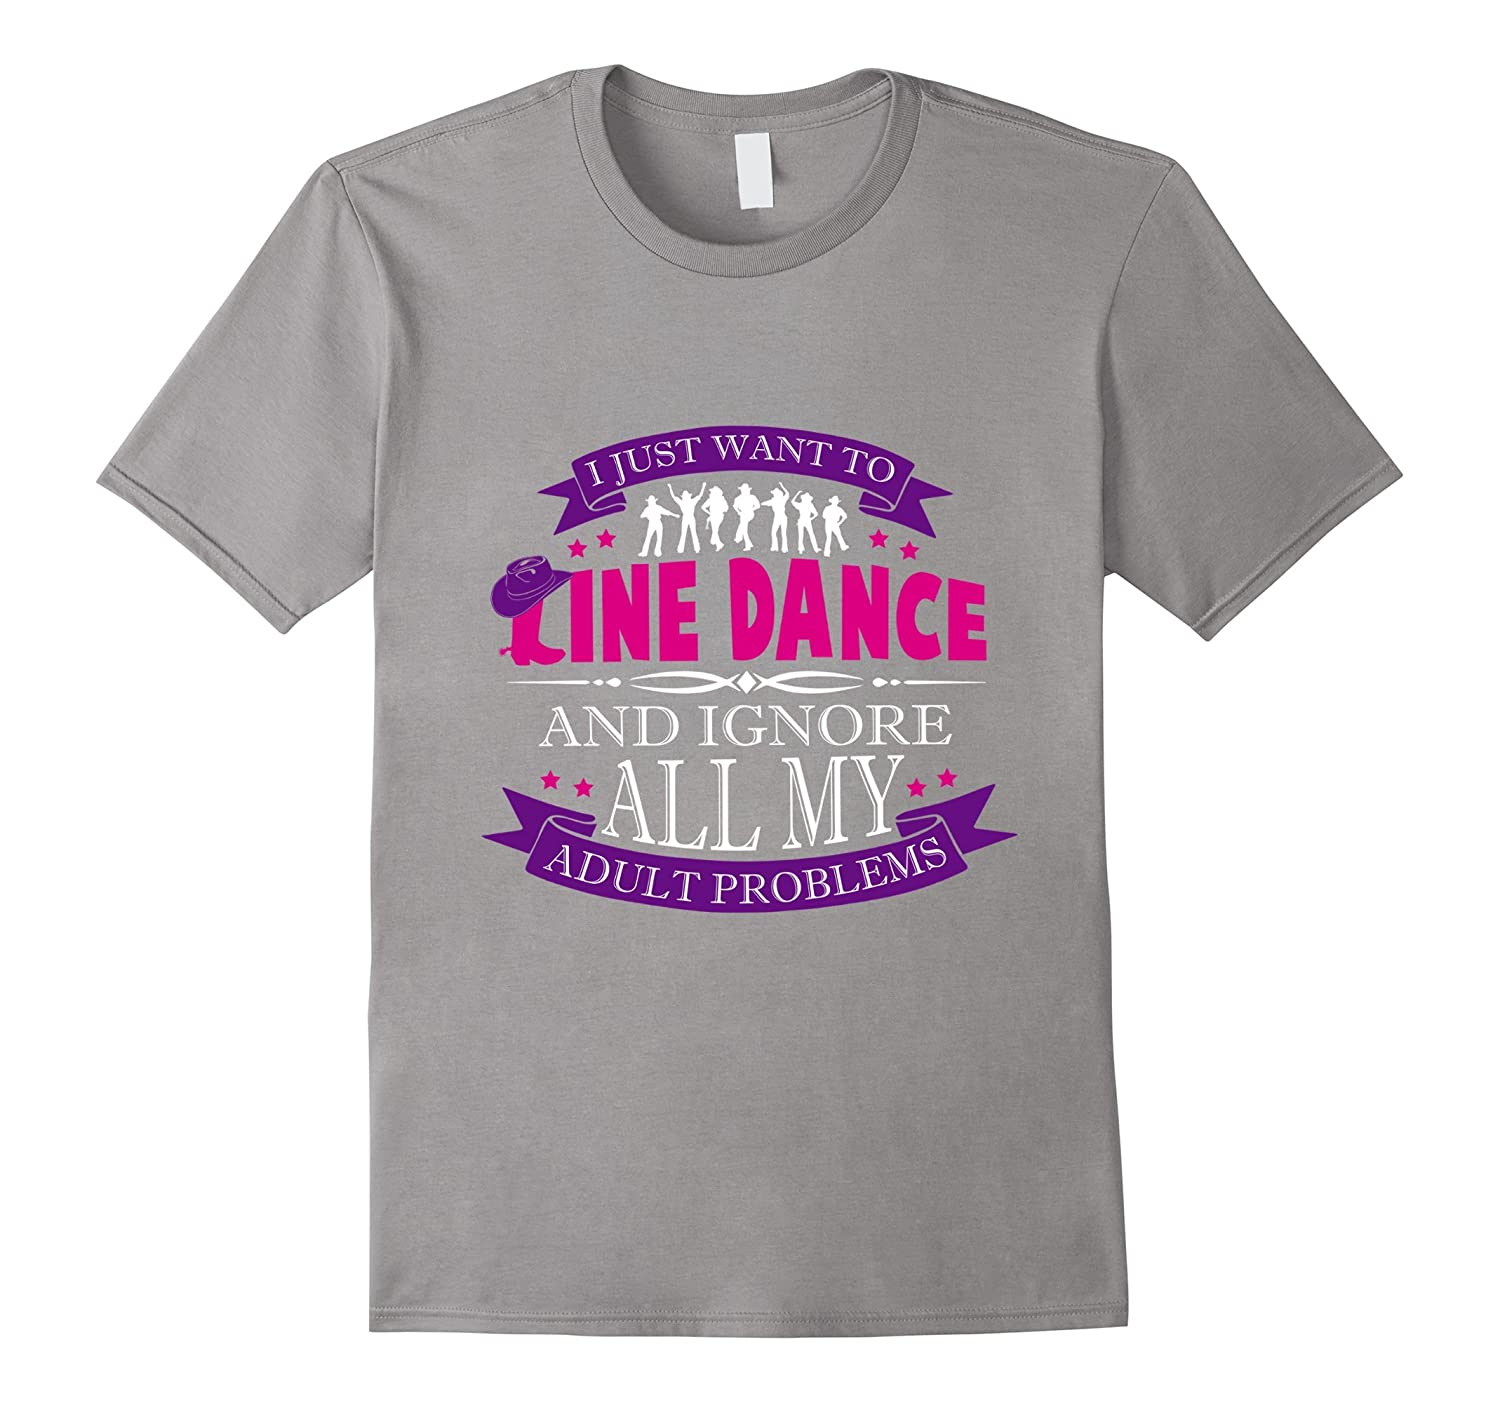 Line Art T Shirt Design : Line dance t shirt design art artvinatee